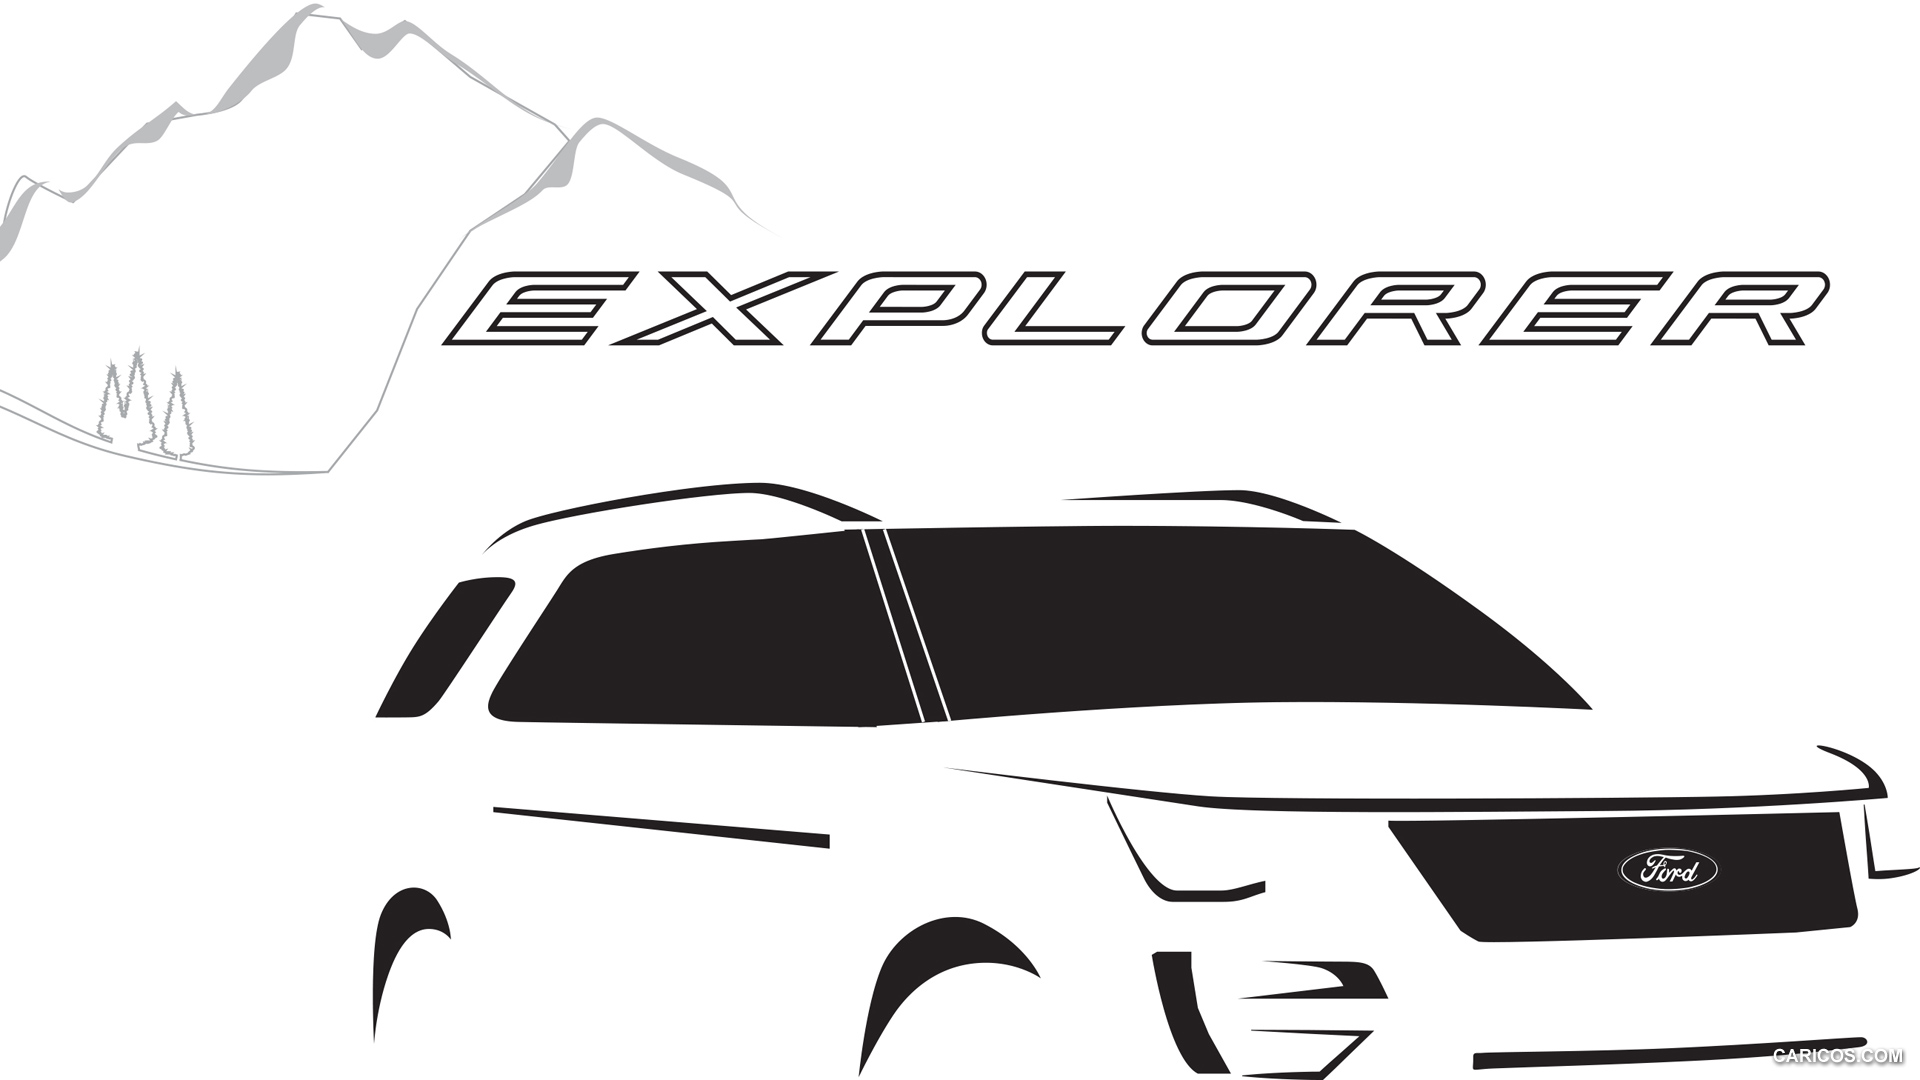 1920x1080 - Ford Explorer Wallpapers 16